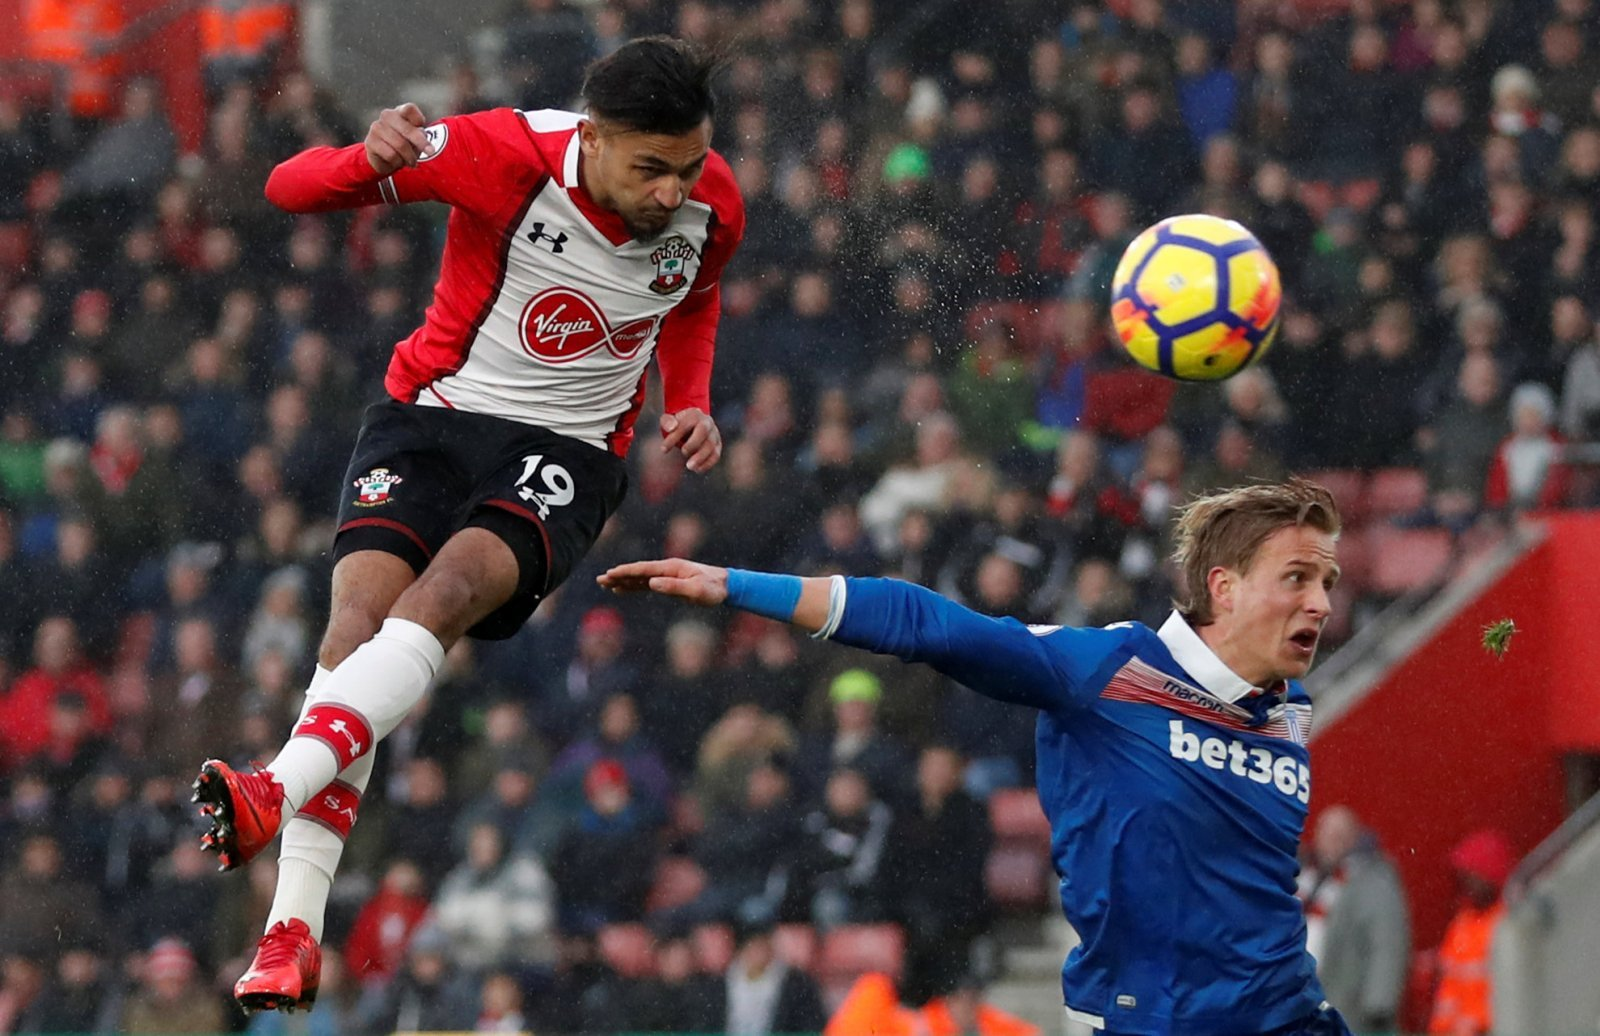 Southampton: Sofiane Boufal excited to be back at the club